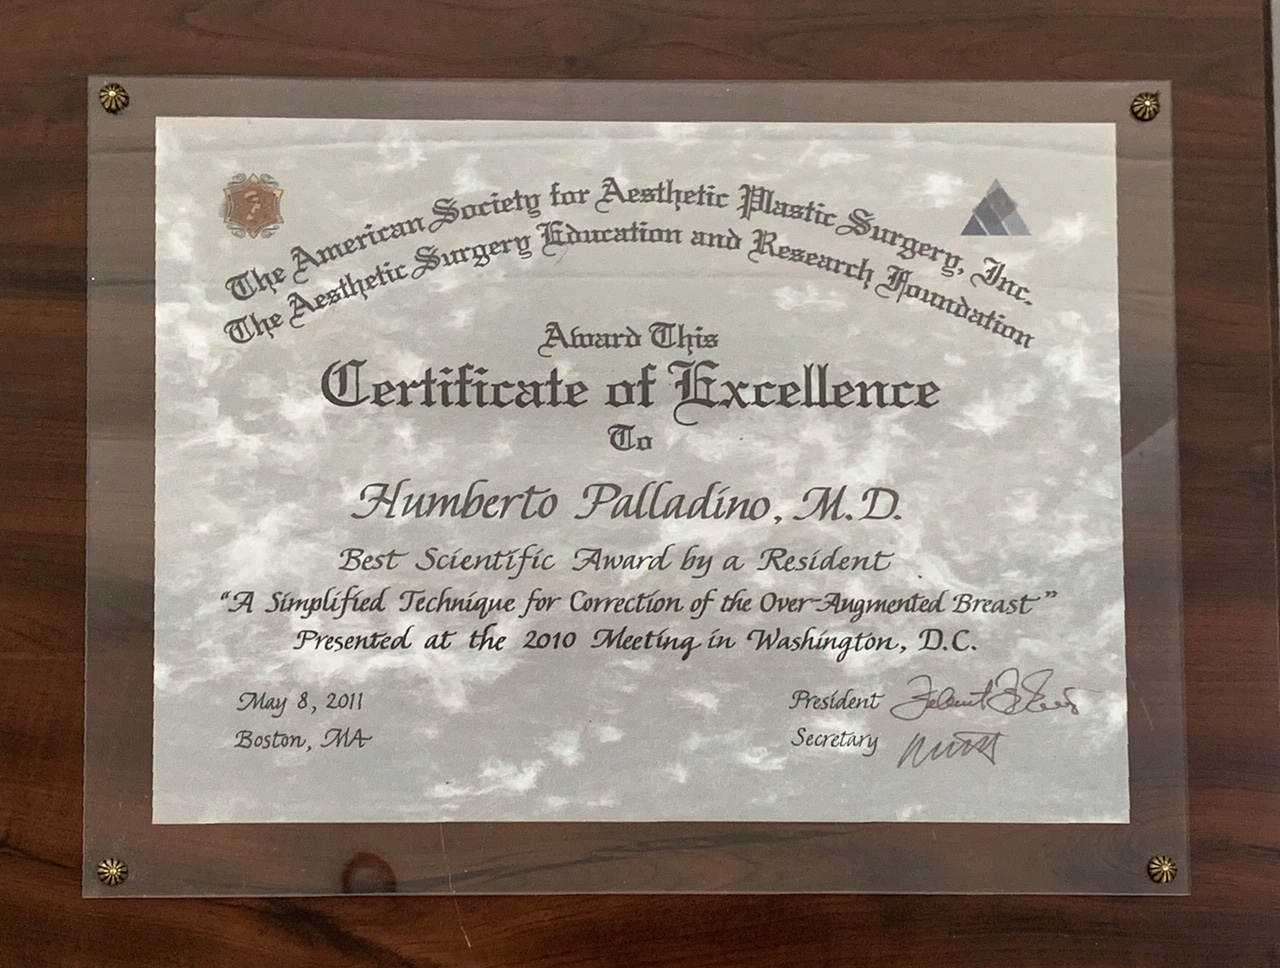 ASAPS Certificate of Excellence